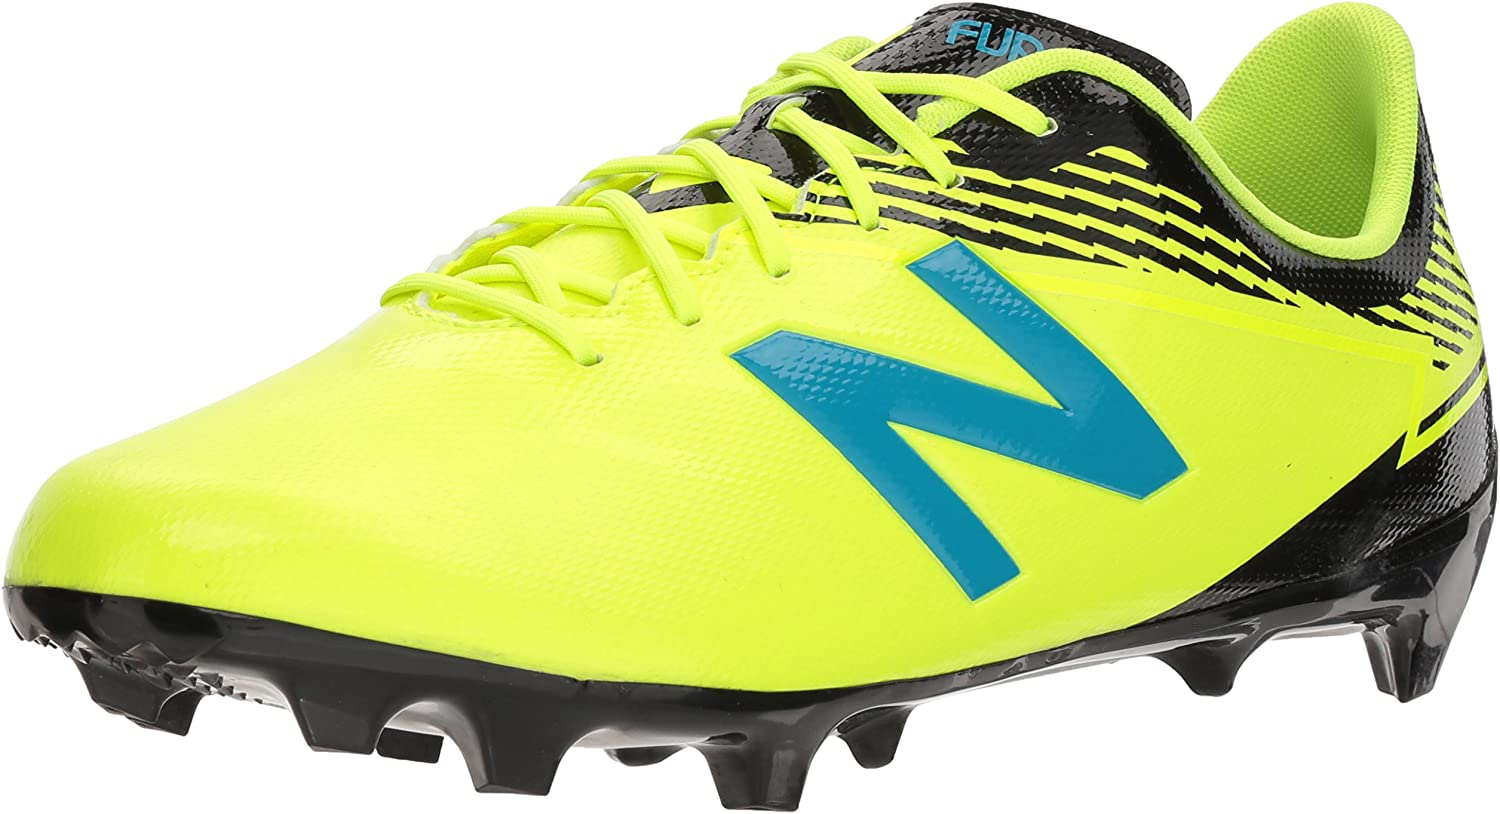 New Balance Men's Selling rankings Furon 3.0 Dispatch SEAL limited product Ground Firm Soccer Shoe